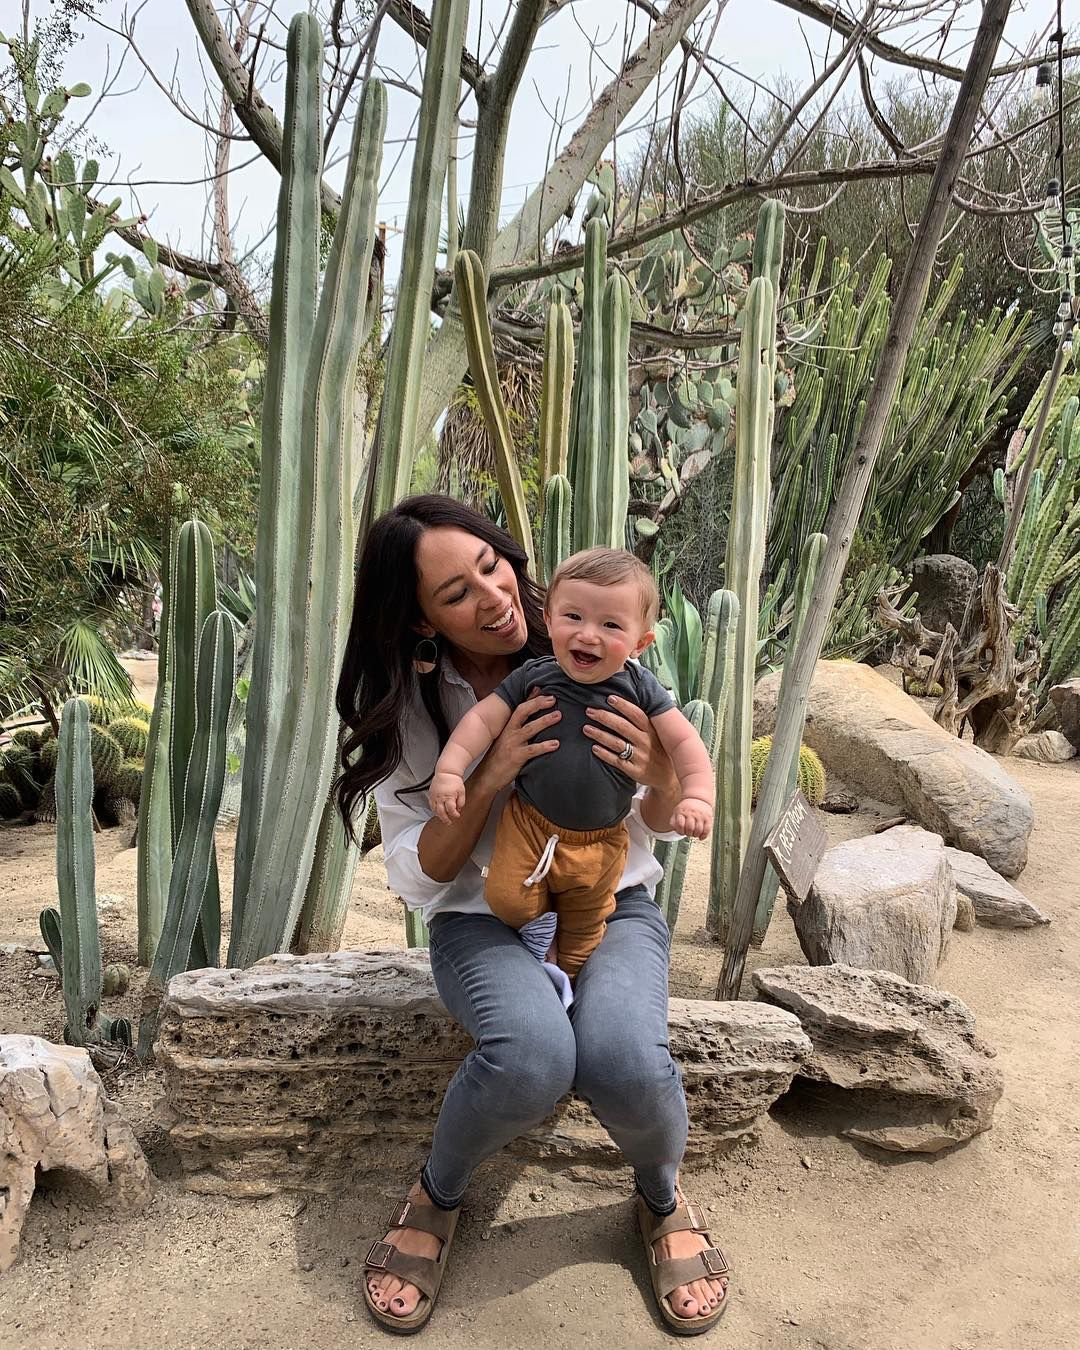 Everything You Need To Know About Joanna Gaines Joanna Gaines Instagram Joanna Gaines Baby Joanna Gaines Family,Best Artificial Christmas Trees For Heavy Ornaments